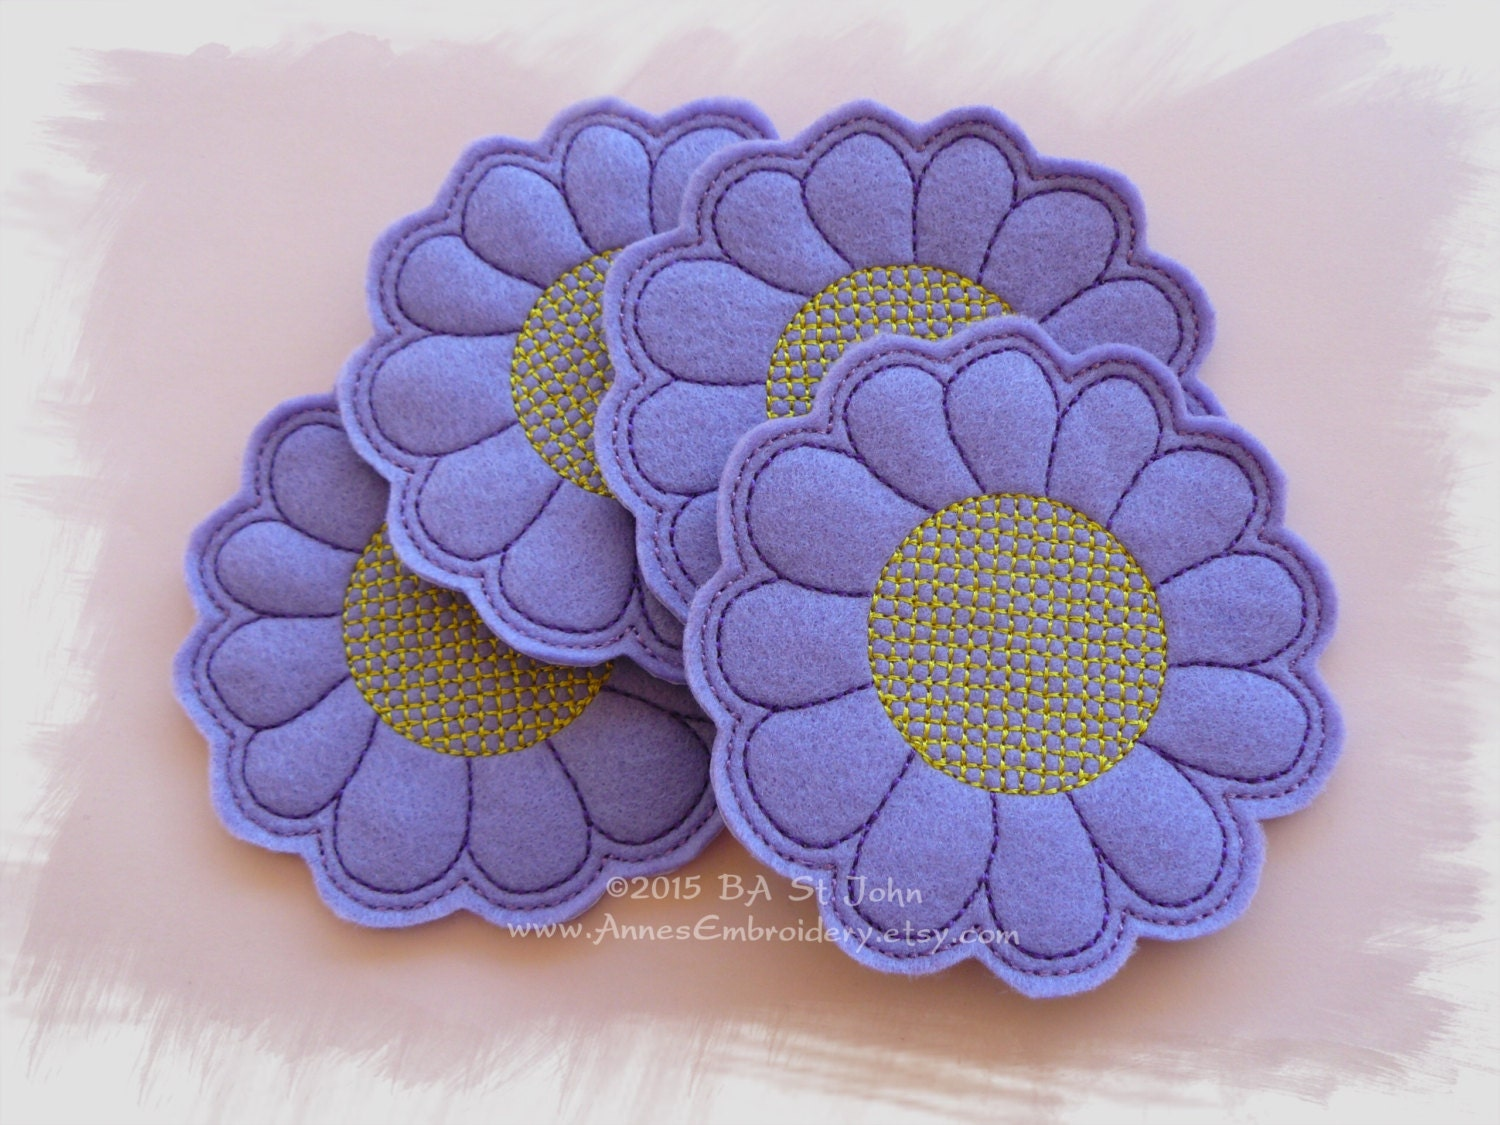 Felt Flower Coaster In The Hoop Ith Machine Embroidery